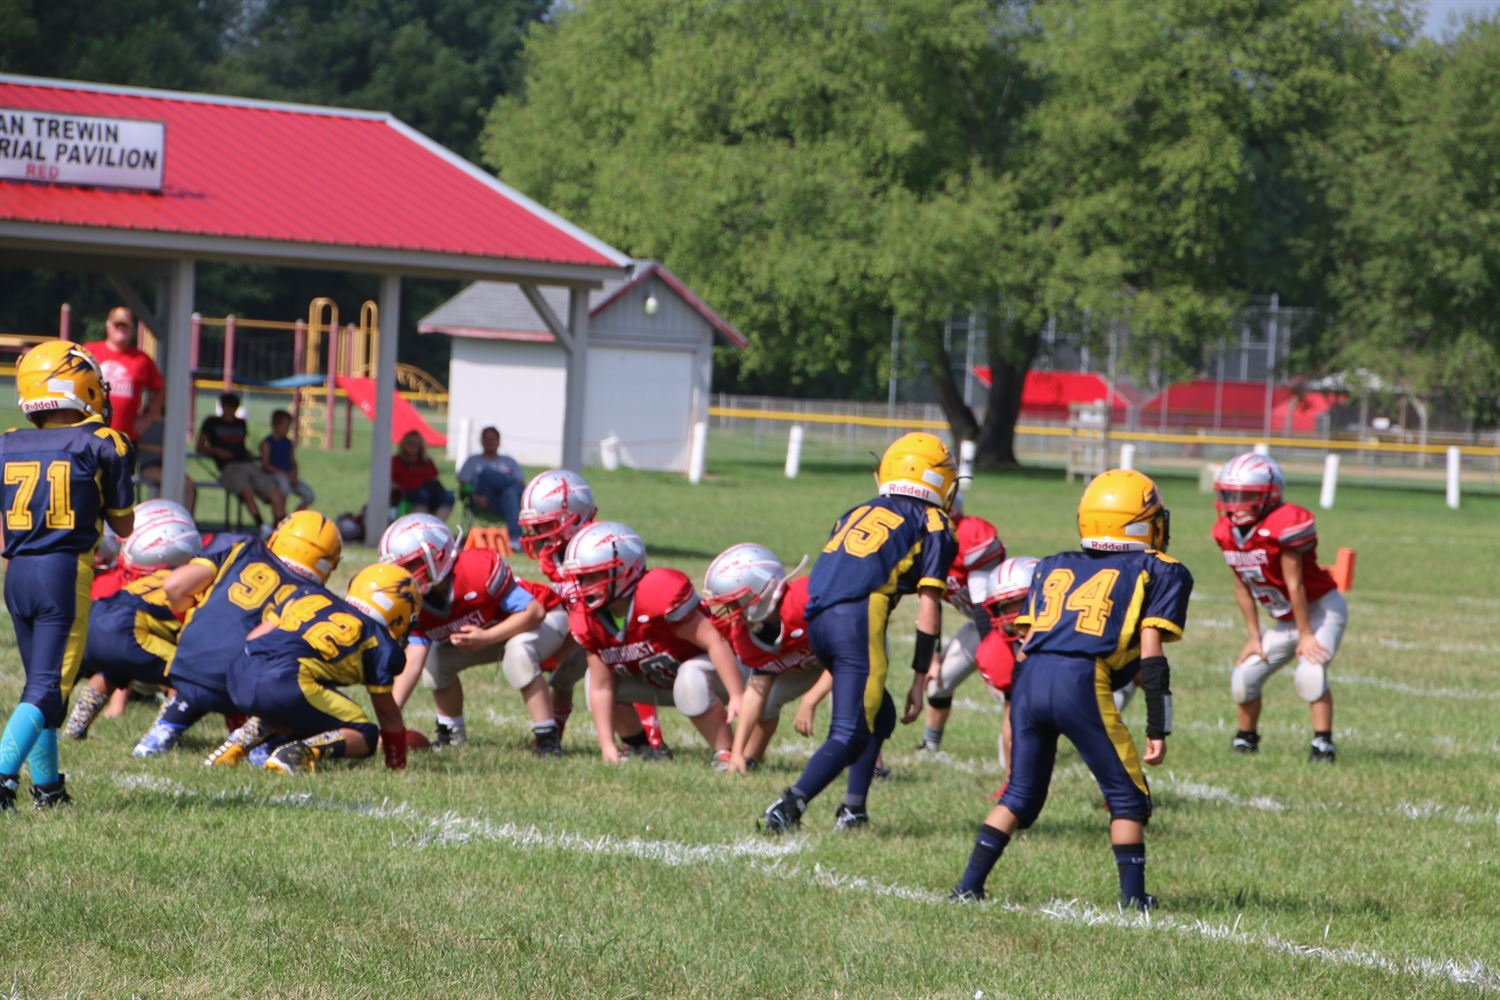 Tallmadge Youth Football - Tallmadge Youth Football